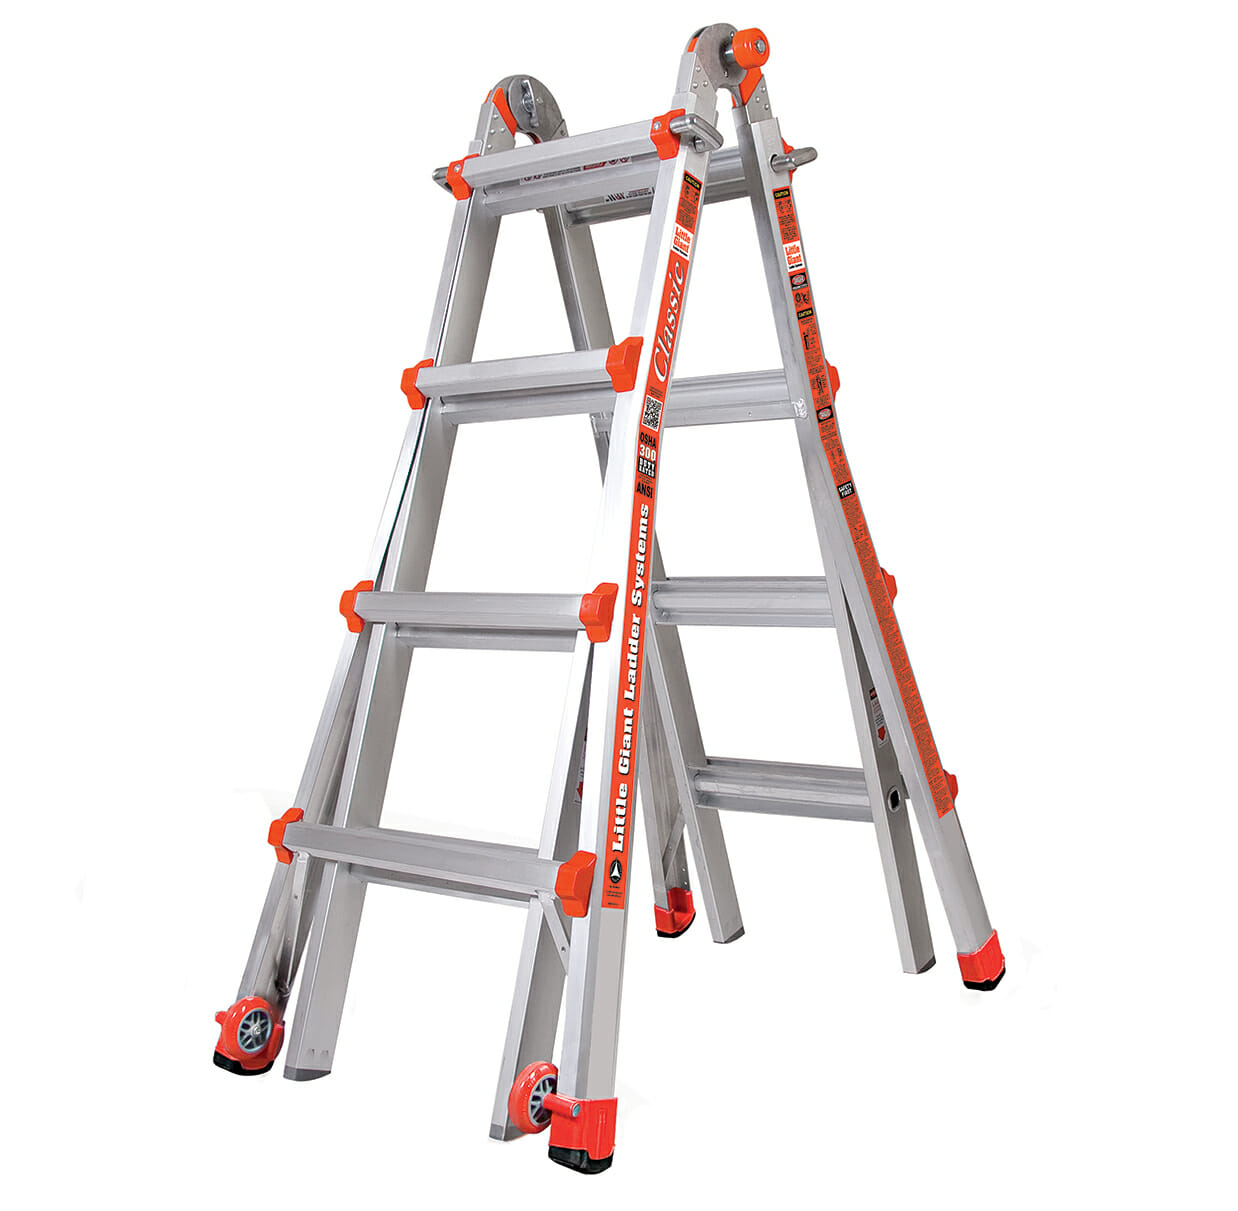 Classic Extension Ladder | Telescopic Ladder - Little Giant Ladders